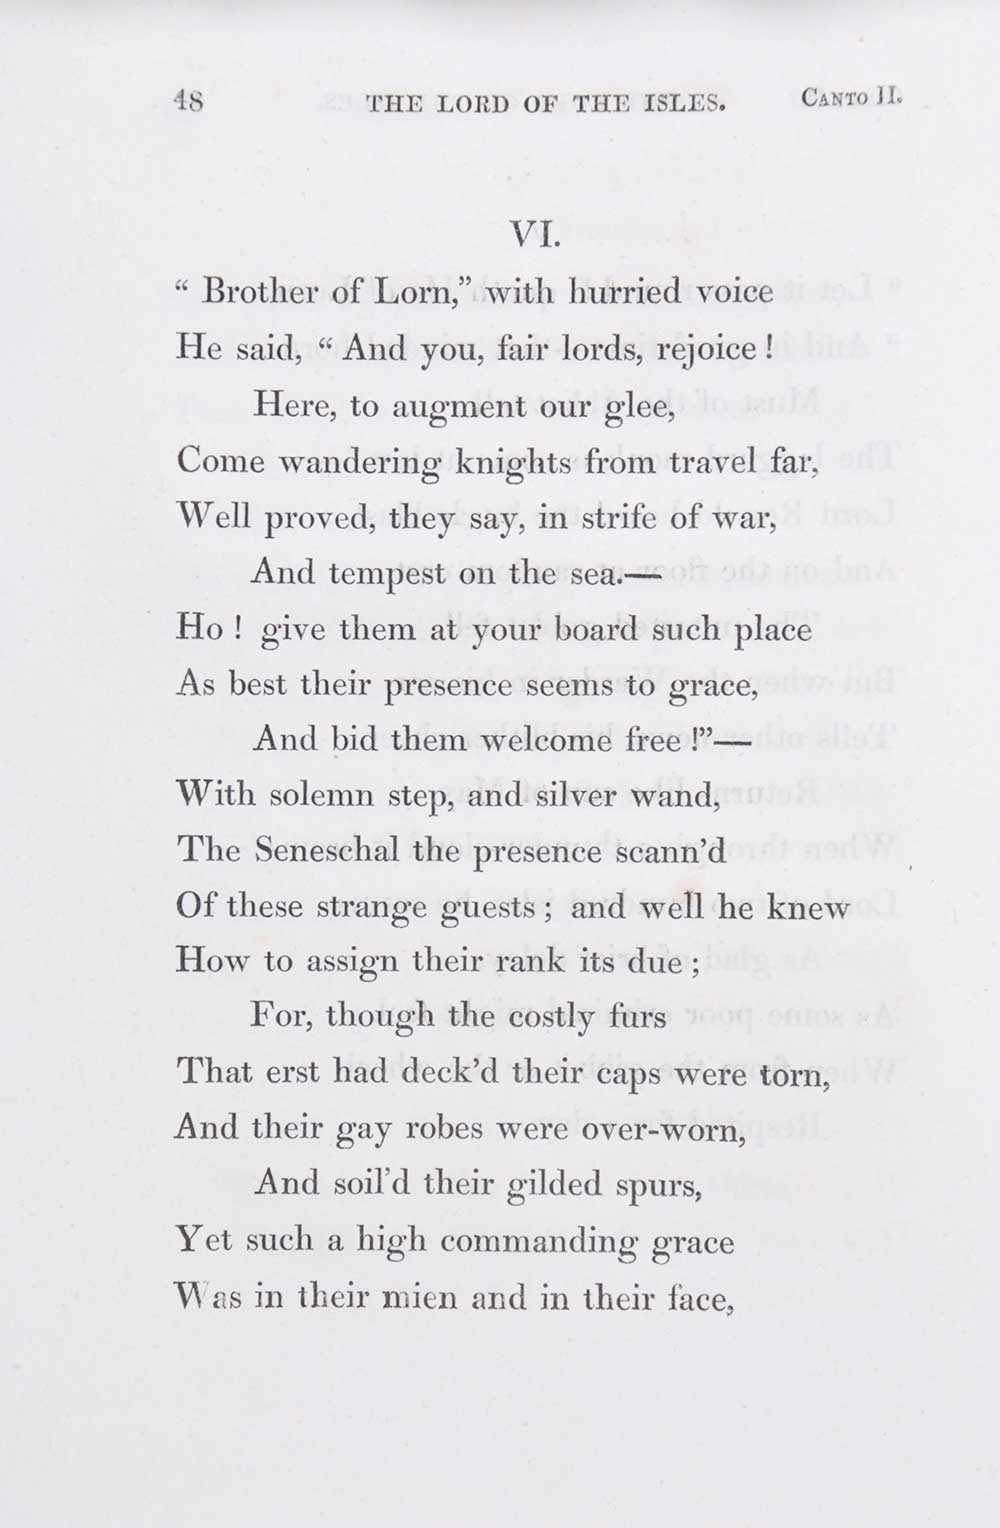 Sir Walter Scott. <em>The Lord of the Isles: a poem.</em> [1st edition]. Edinburgh: Printed for Archibald Constable and Co., Edinburgh; and Longman, Hurst, Rees, Orme, and Brown; by James Ballantyne and Co., Edinburgh, 1815.